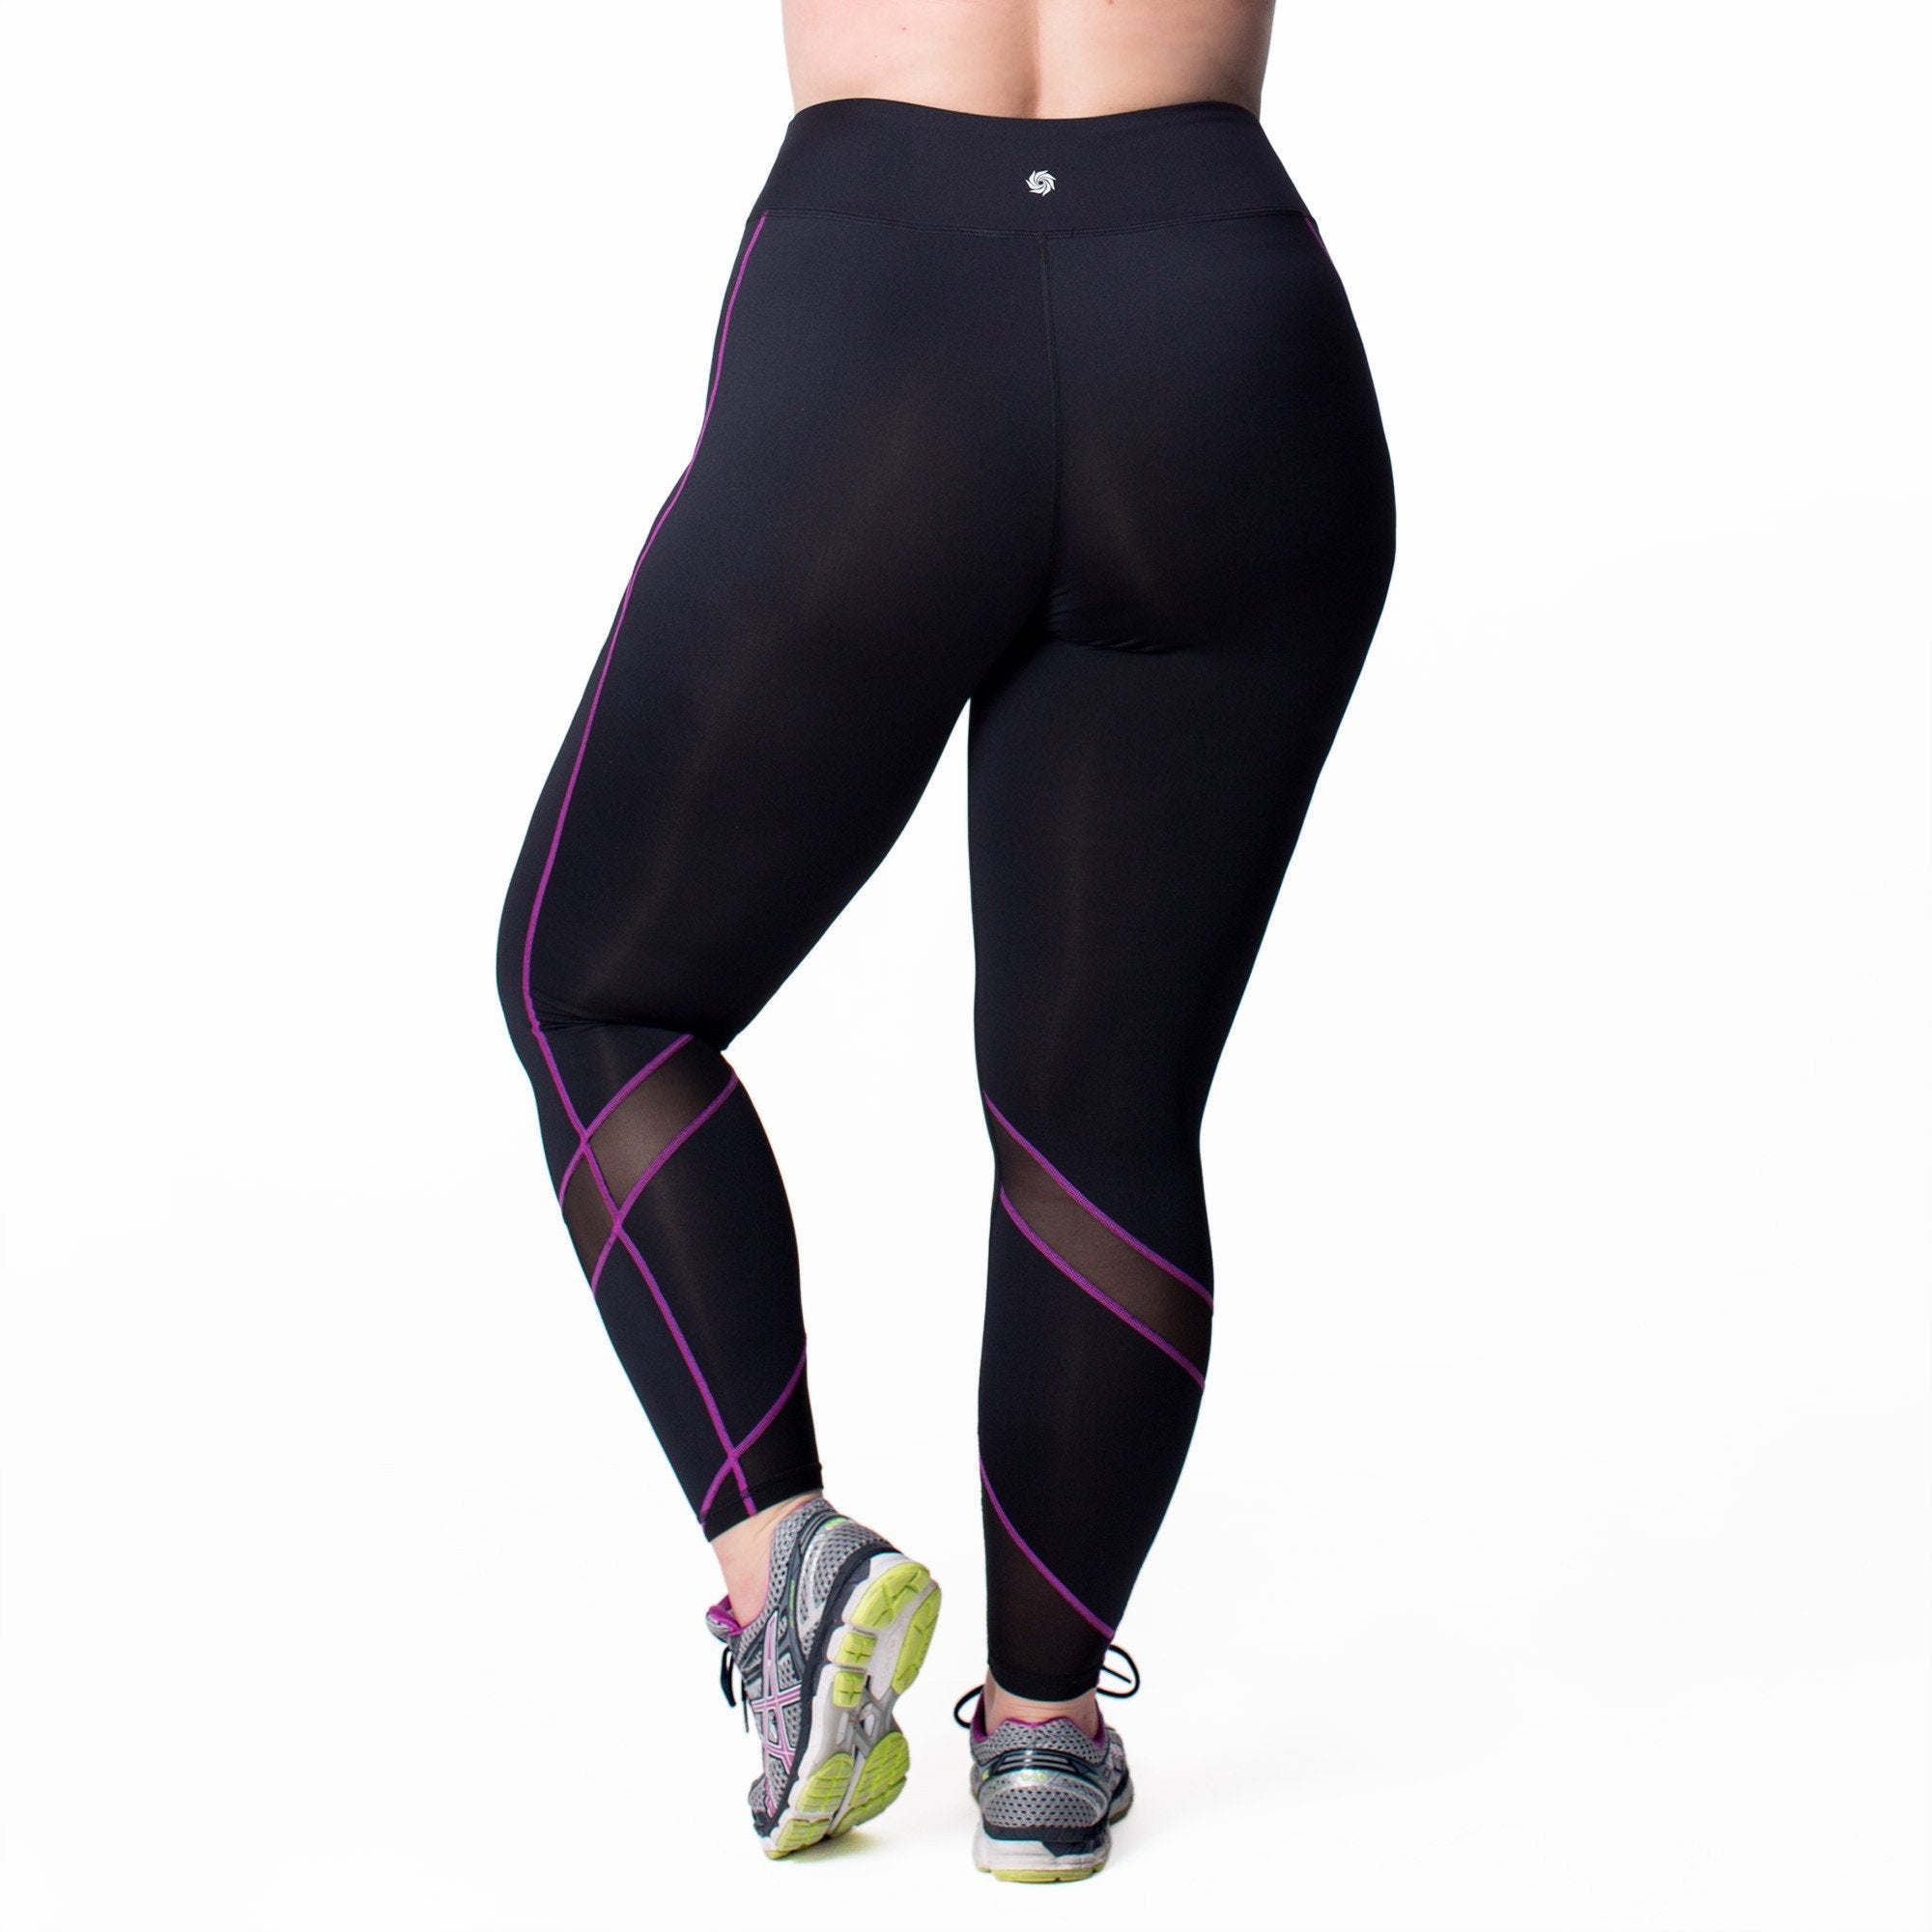 Andrea Sport Legging - Rainbeau Curves, 14/16 / Wild Orchid, activewear, athleisure, fitness, workout, gym, performance, womens, ladies, plus size, curvy, full figured, spandex, cotton, polyester - 1